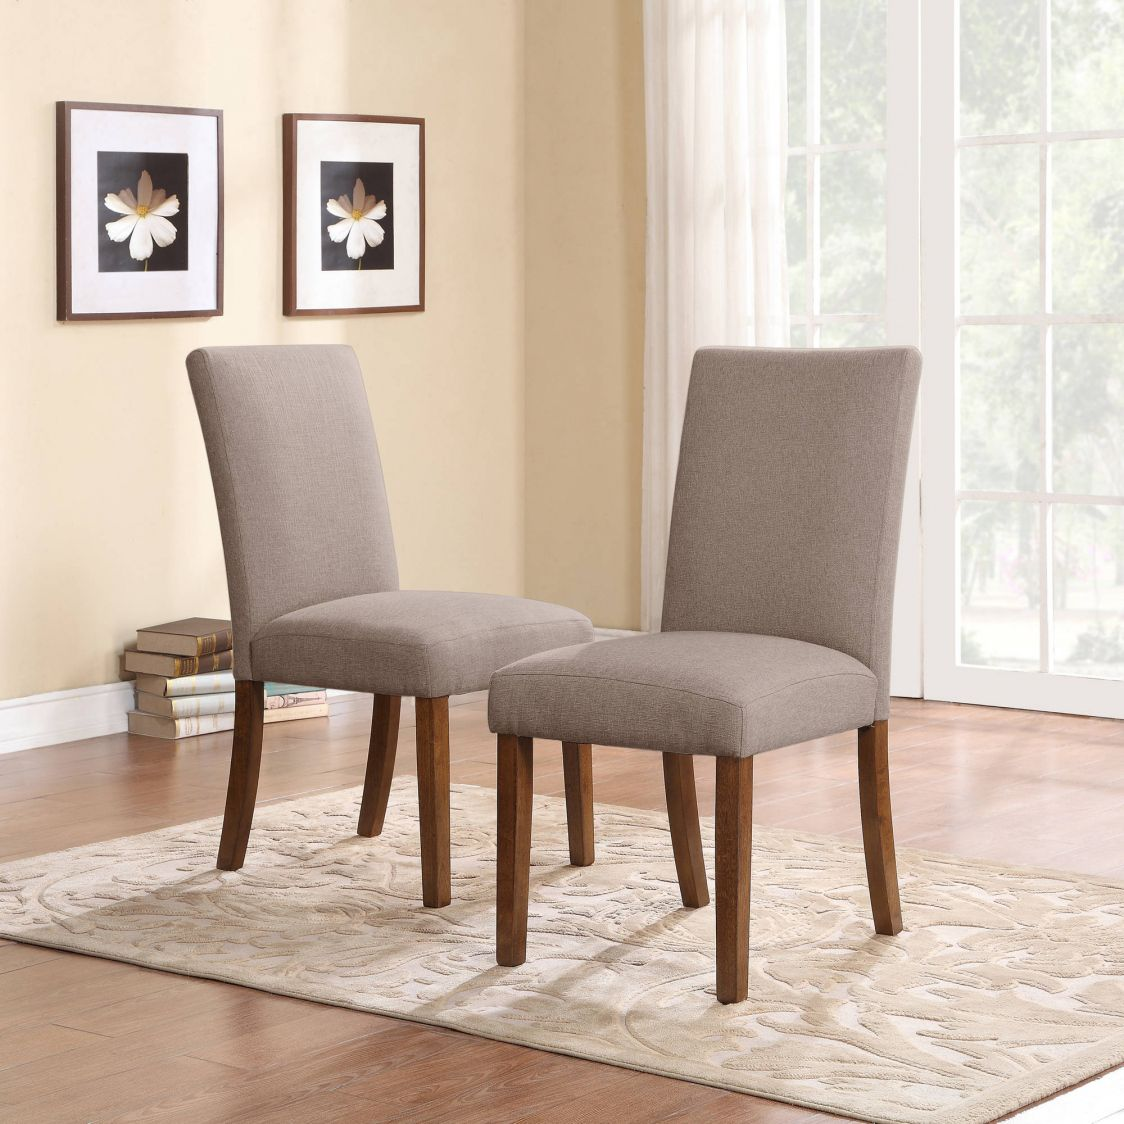 Upholstered Parsons Dining Room Chairs  Cool Modern Furniture Custom Upholstered Dining Room Chairs Decorating Design